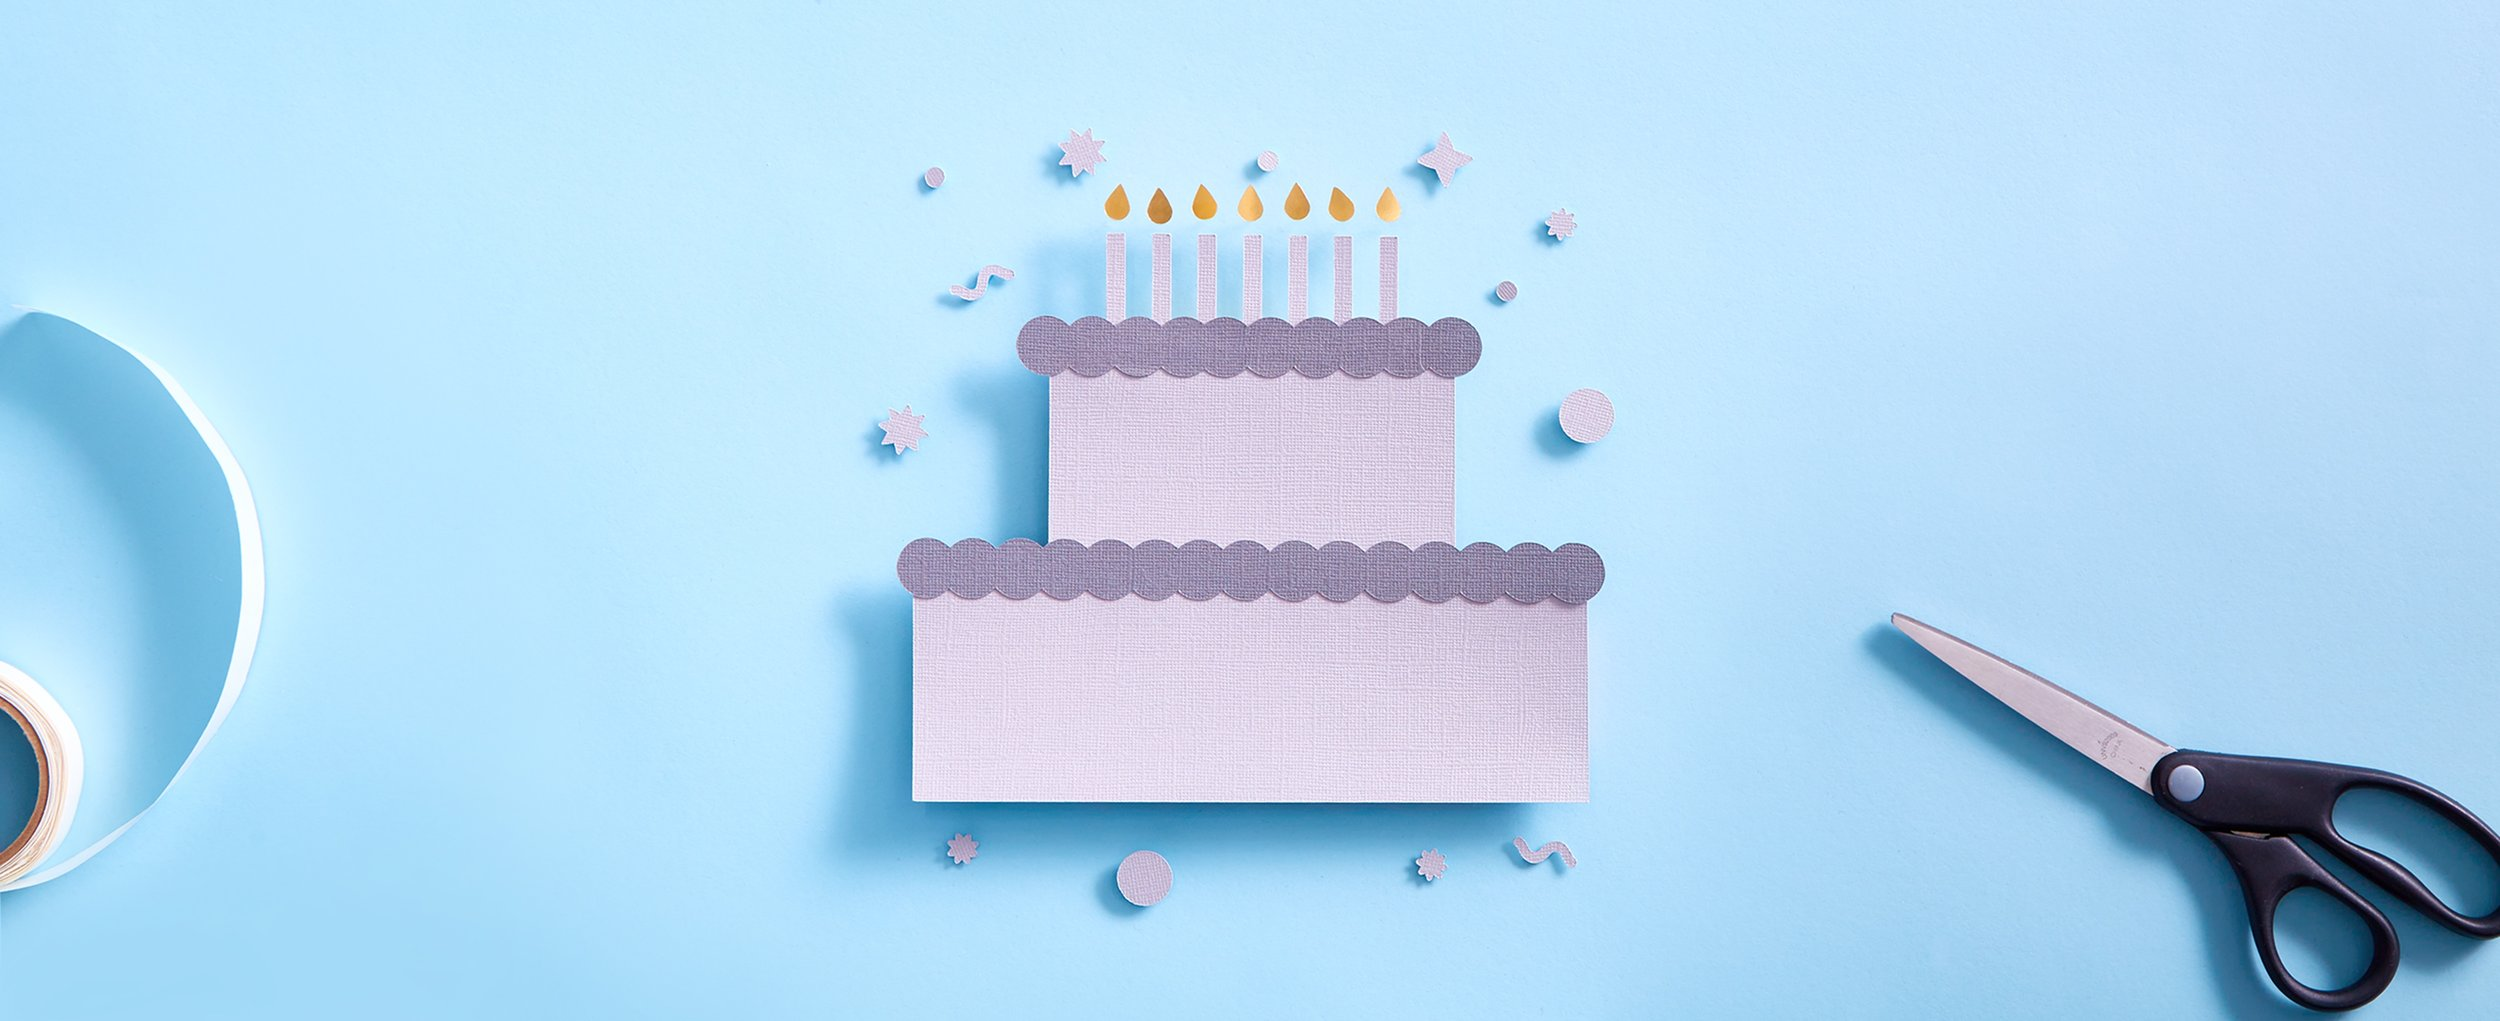 Because I needed the same cake in 6 colors, we shot a neutral gray and I applied the colors in post to save cutting and shoot time.